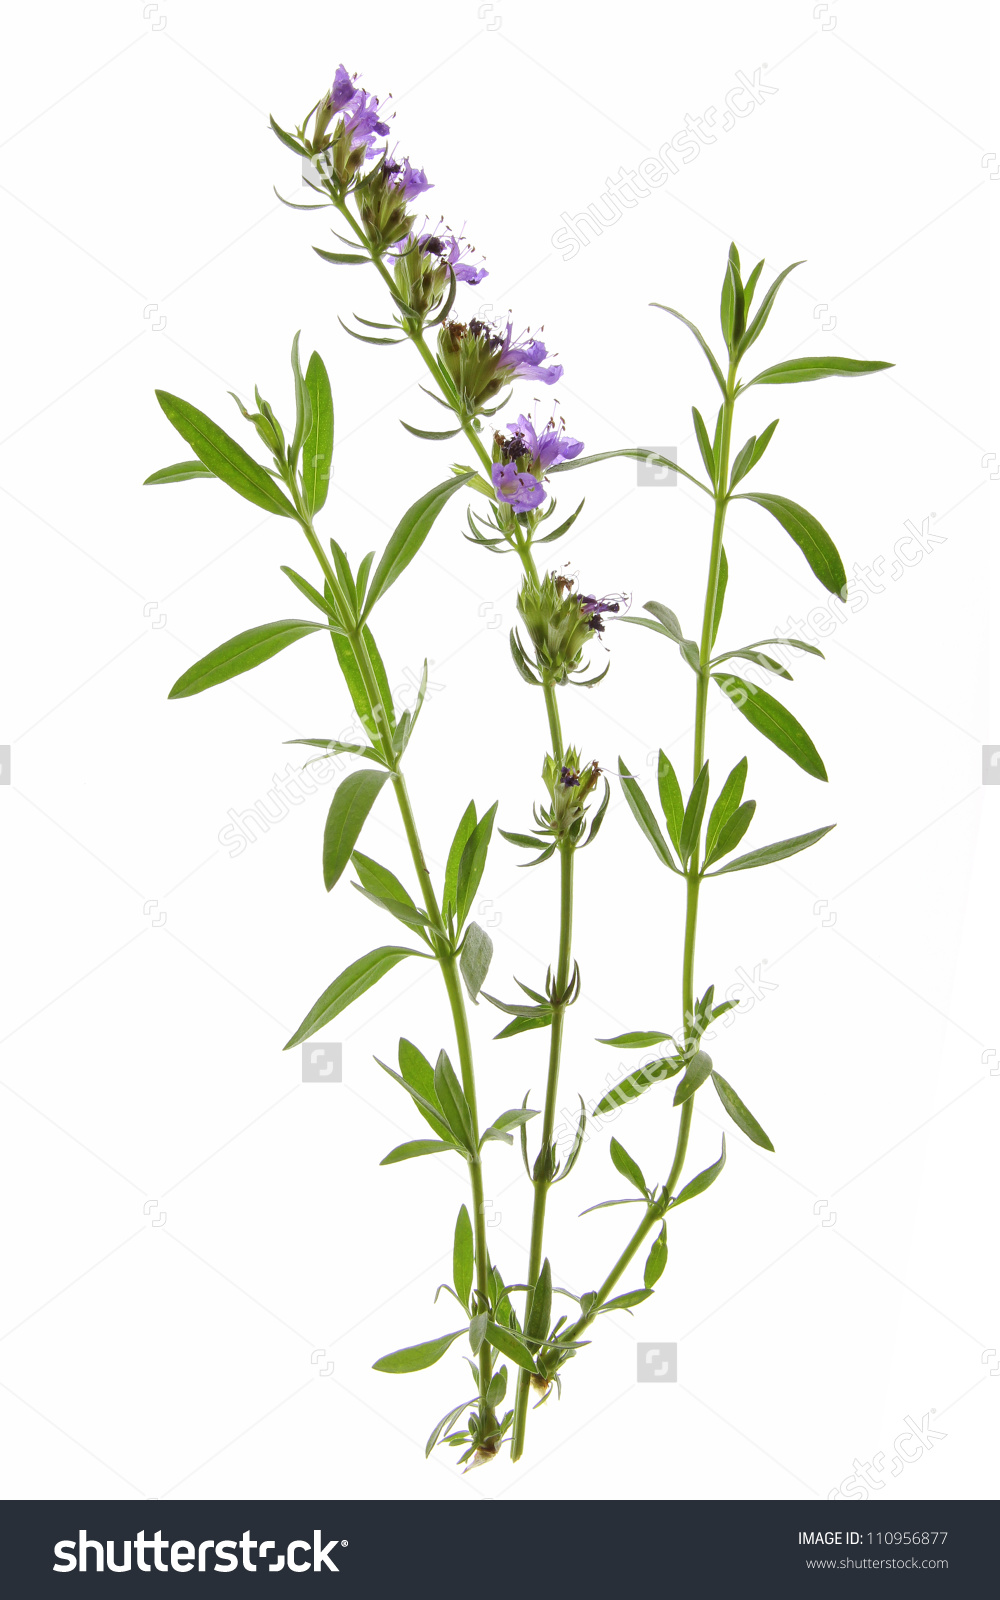 Hyssopus officinalis clipart #1